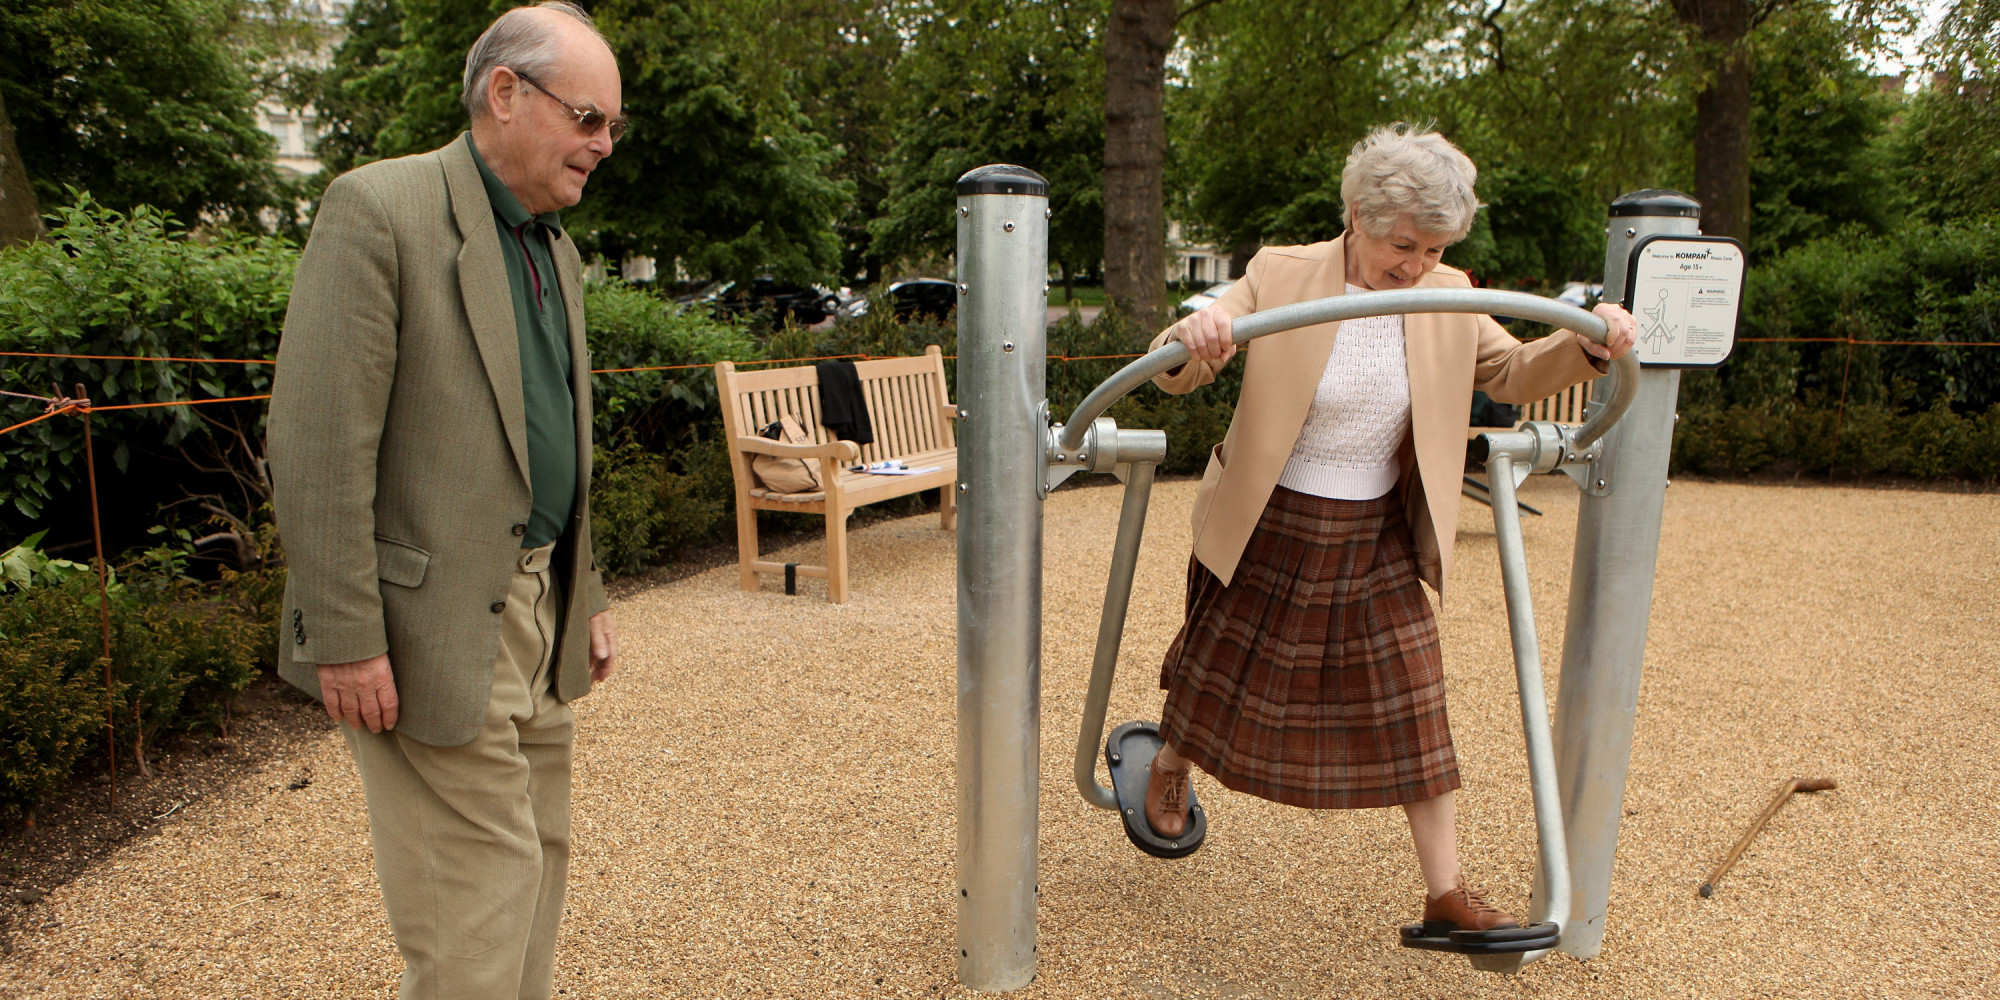 Playgrounds for seniors improve fitness reduce isolation